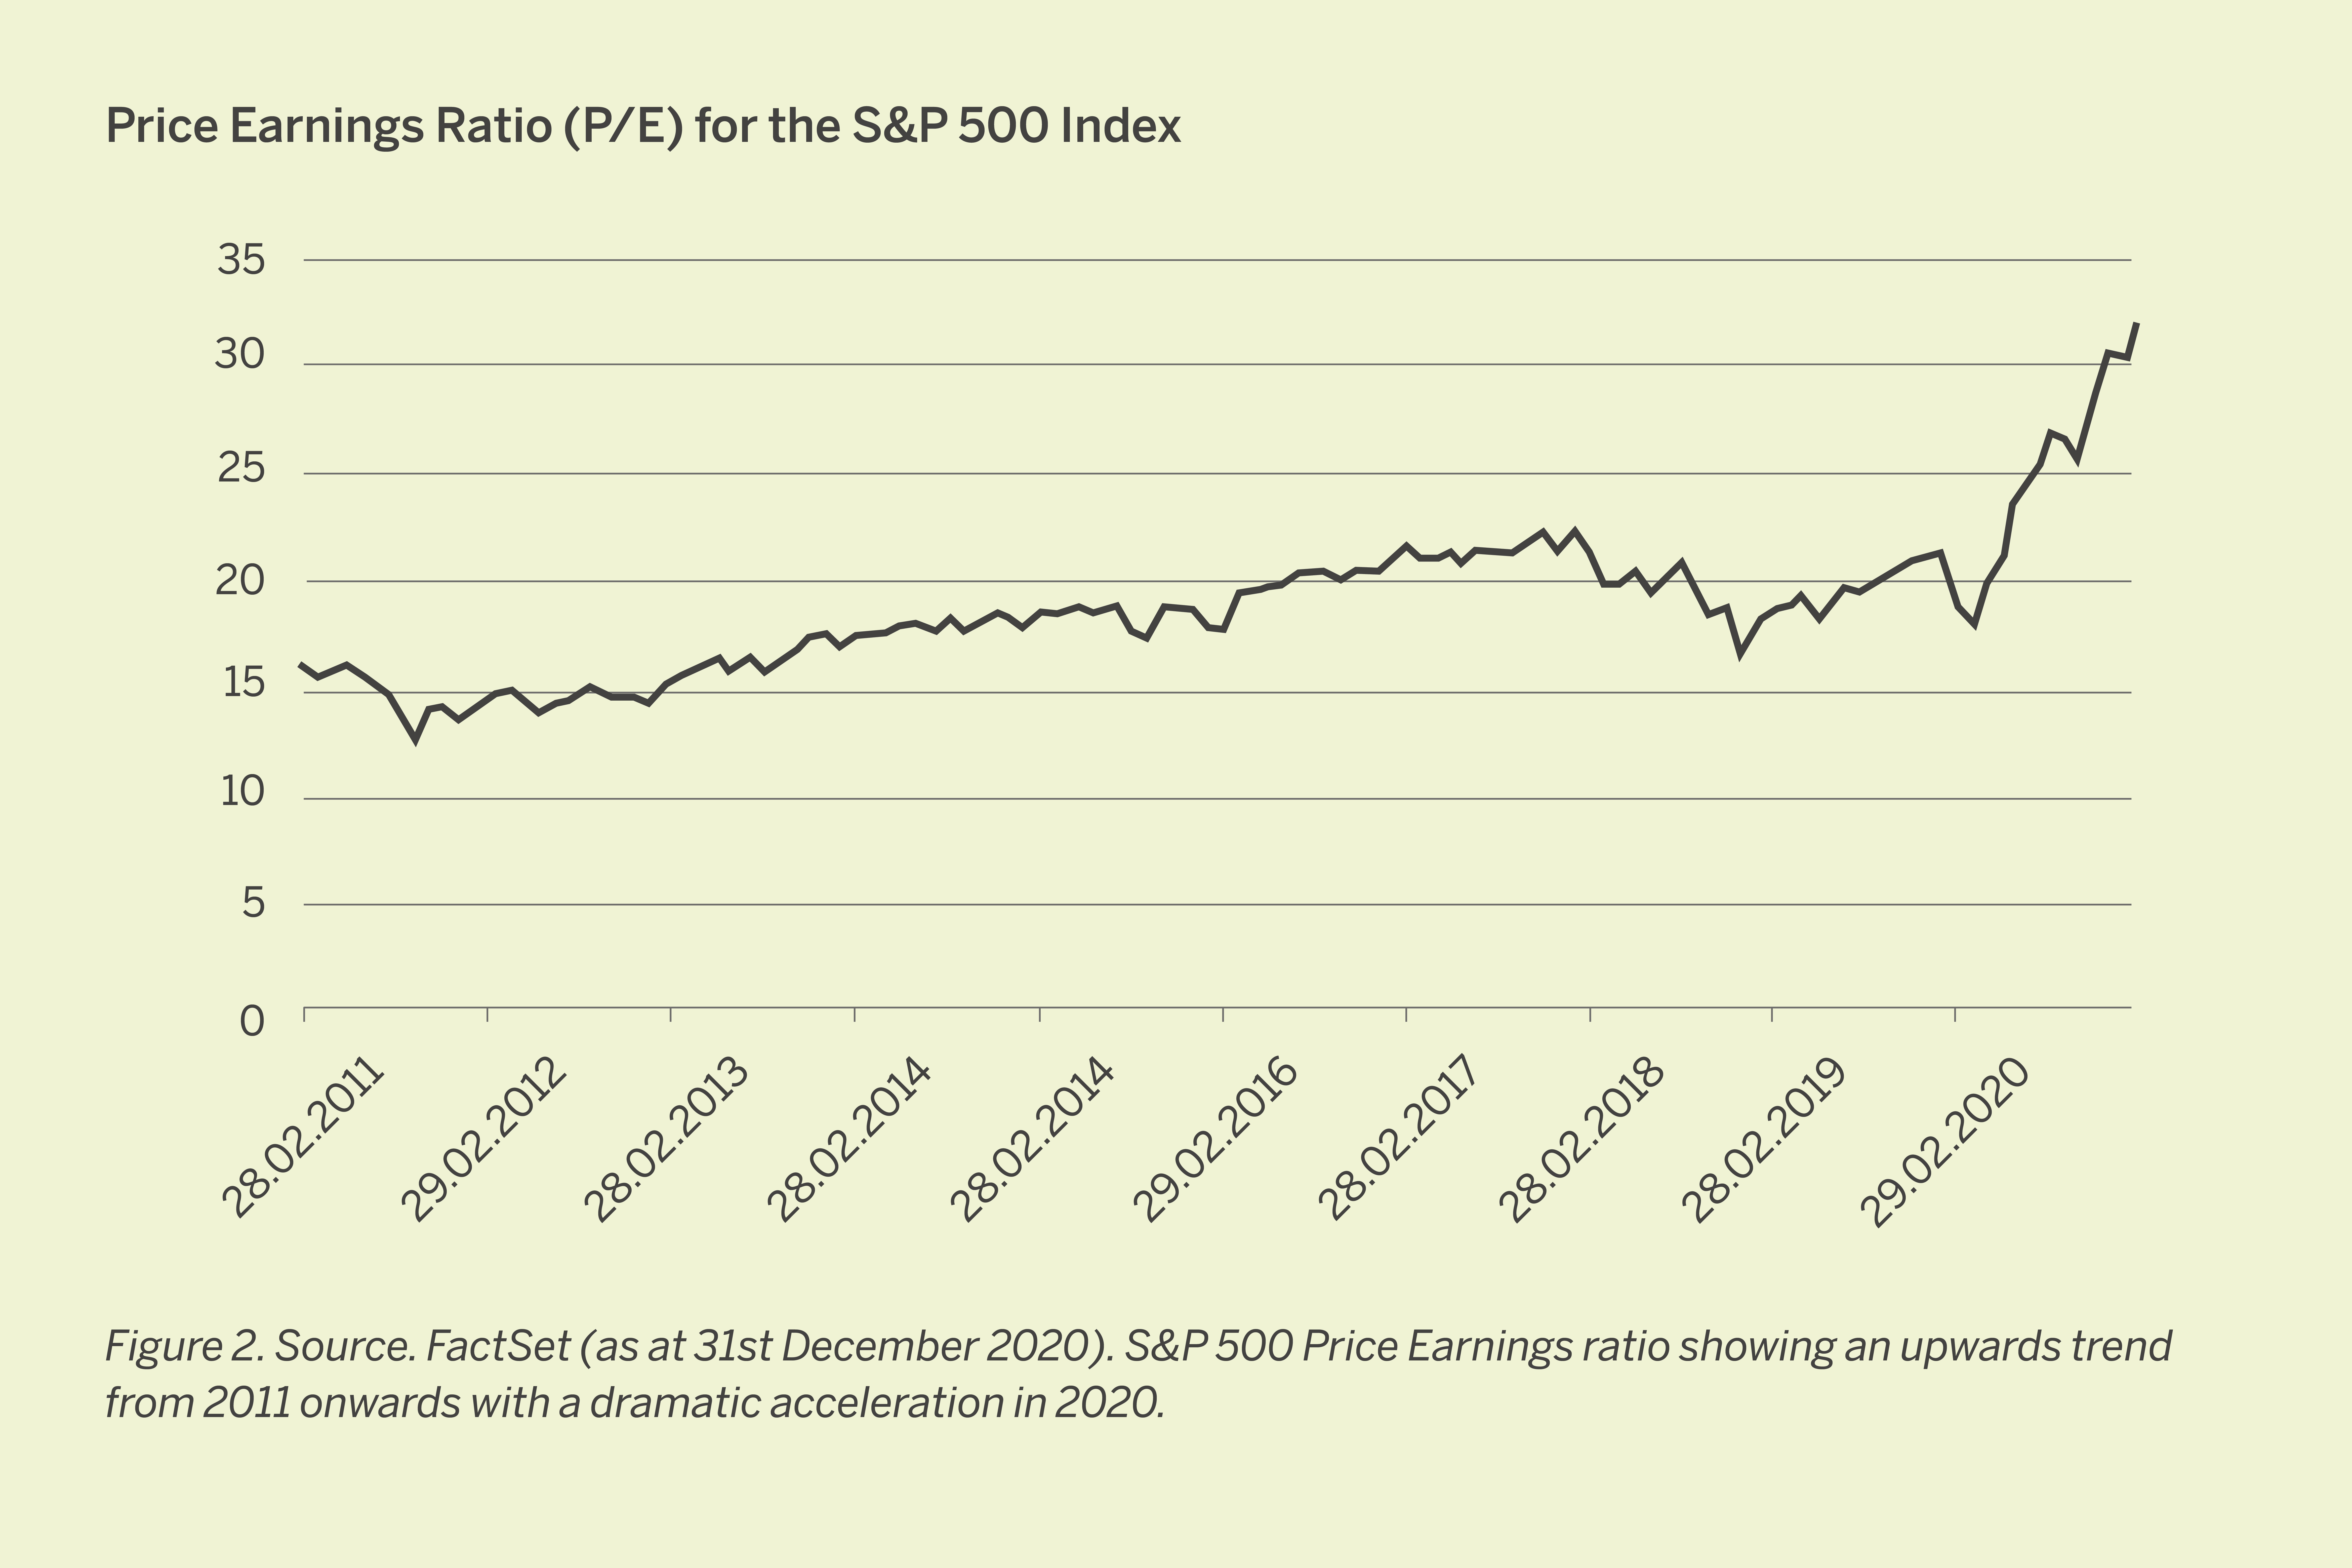 Price Earnings Ratio (P/E) for the S&P 500 Index